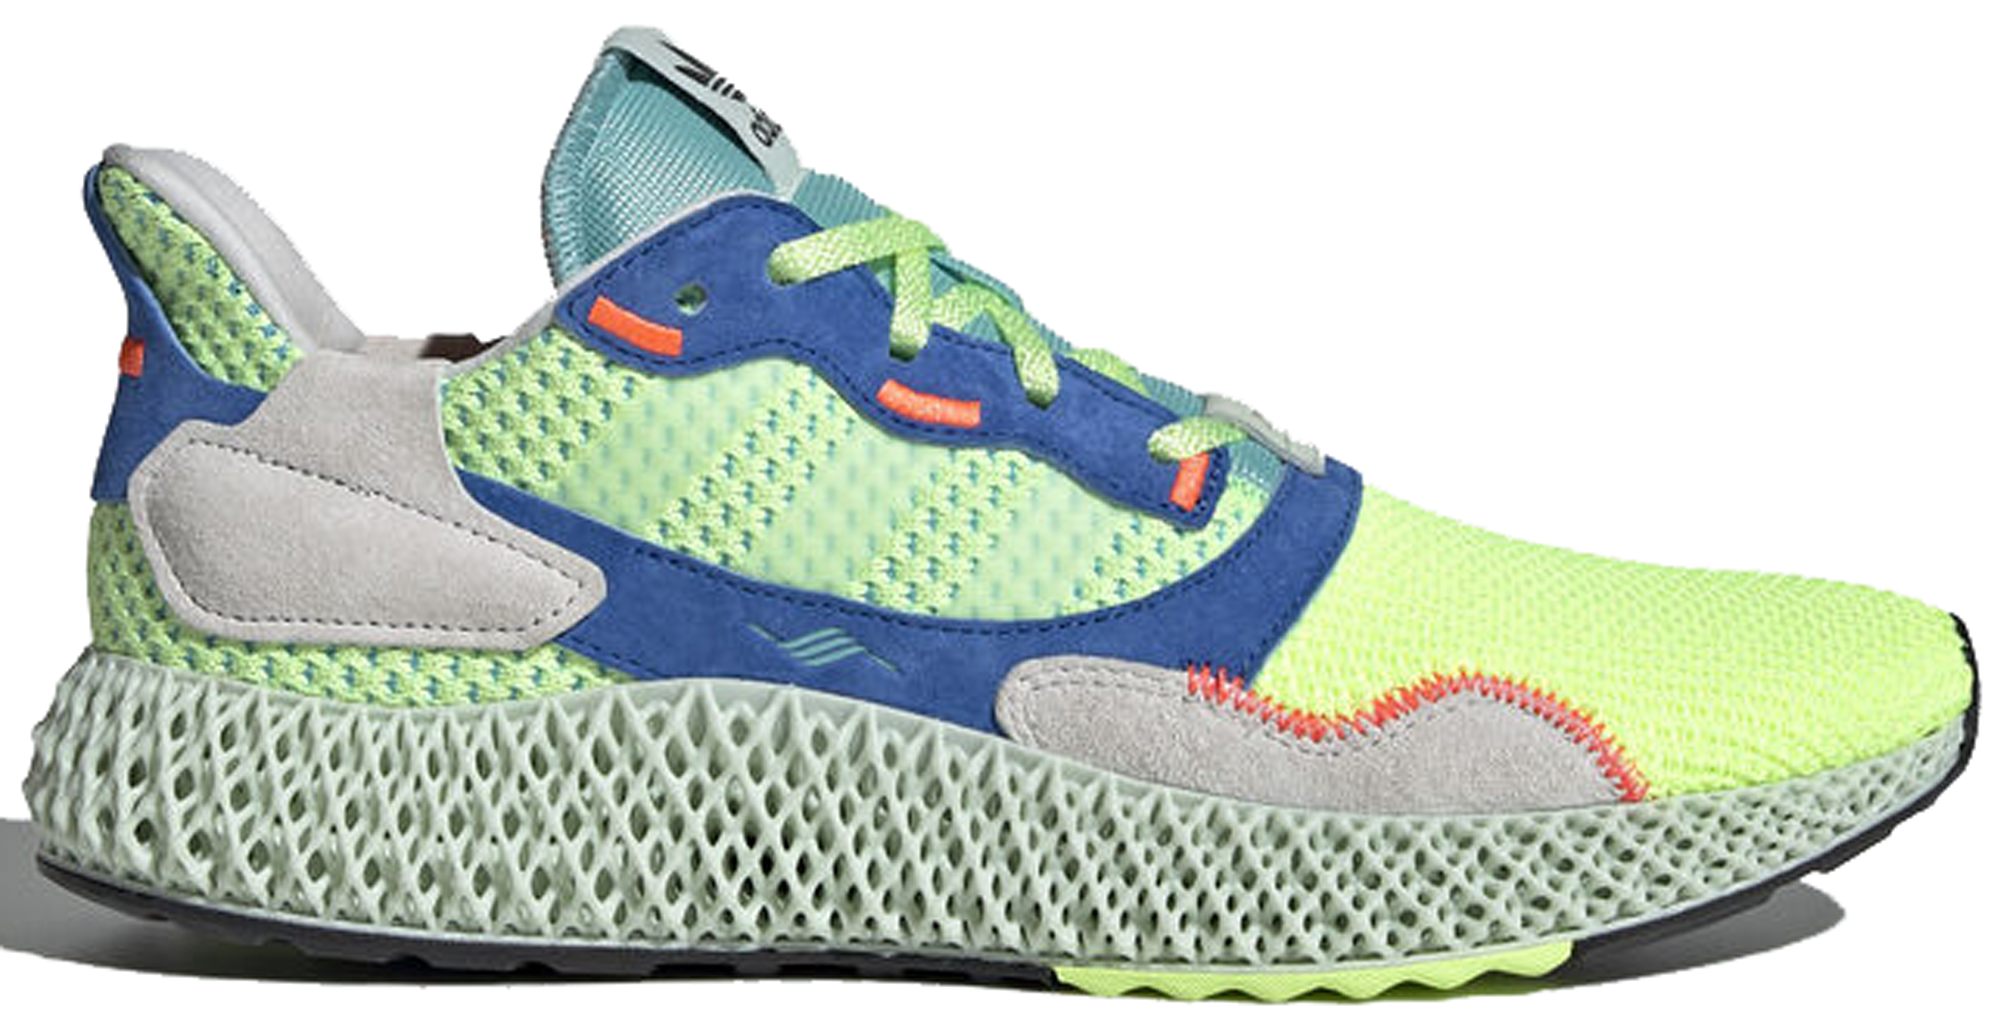 adidas ZX4000 4D Easy Mint • Buy/Sell